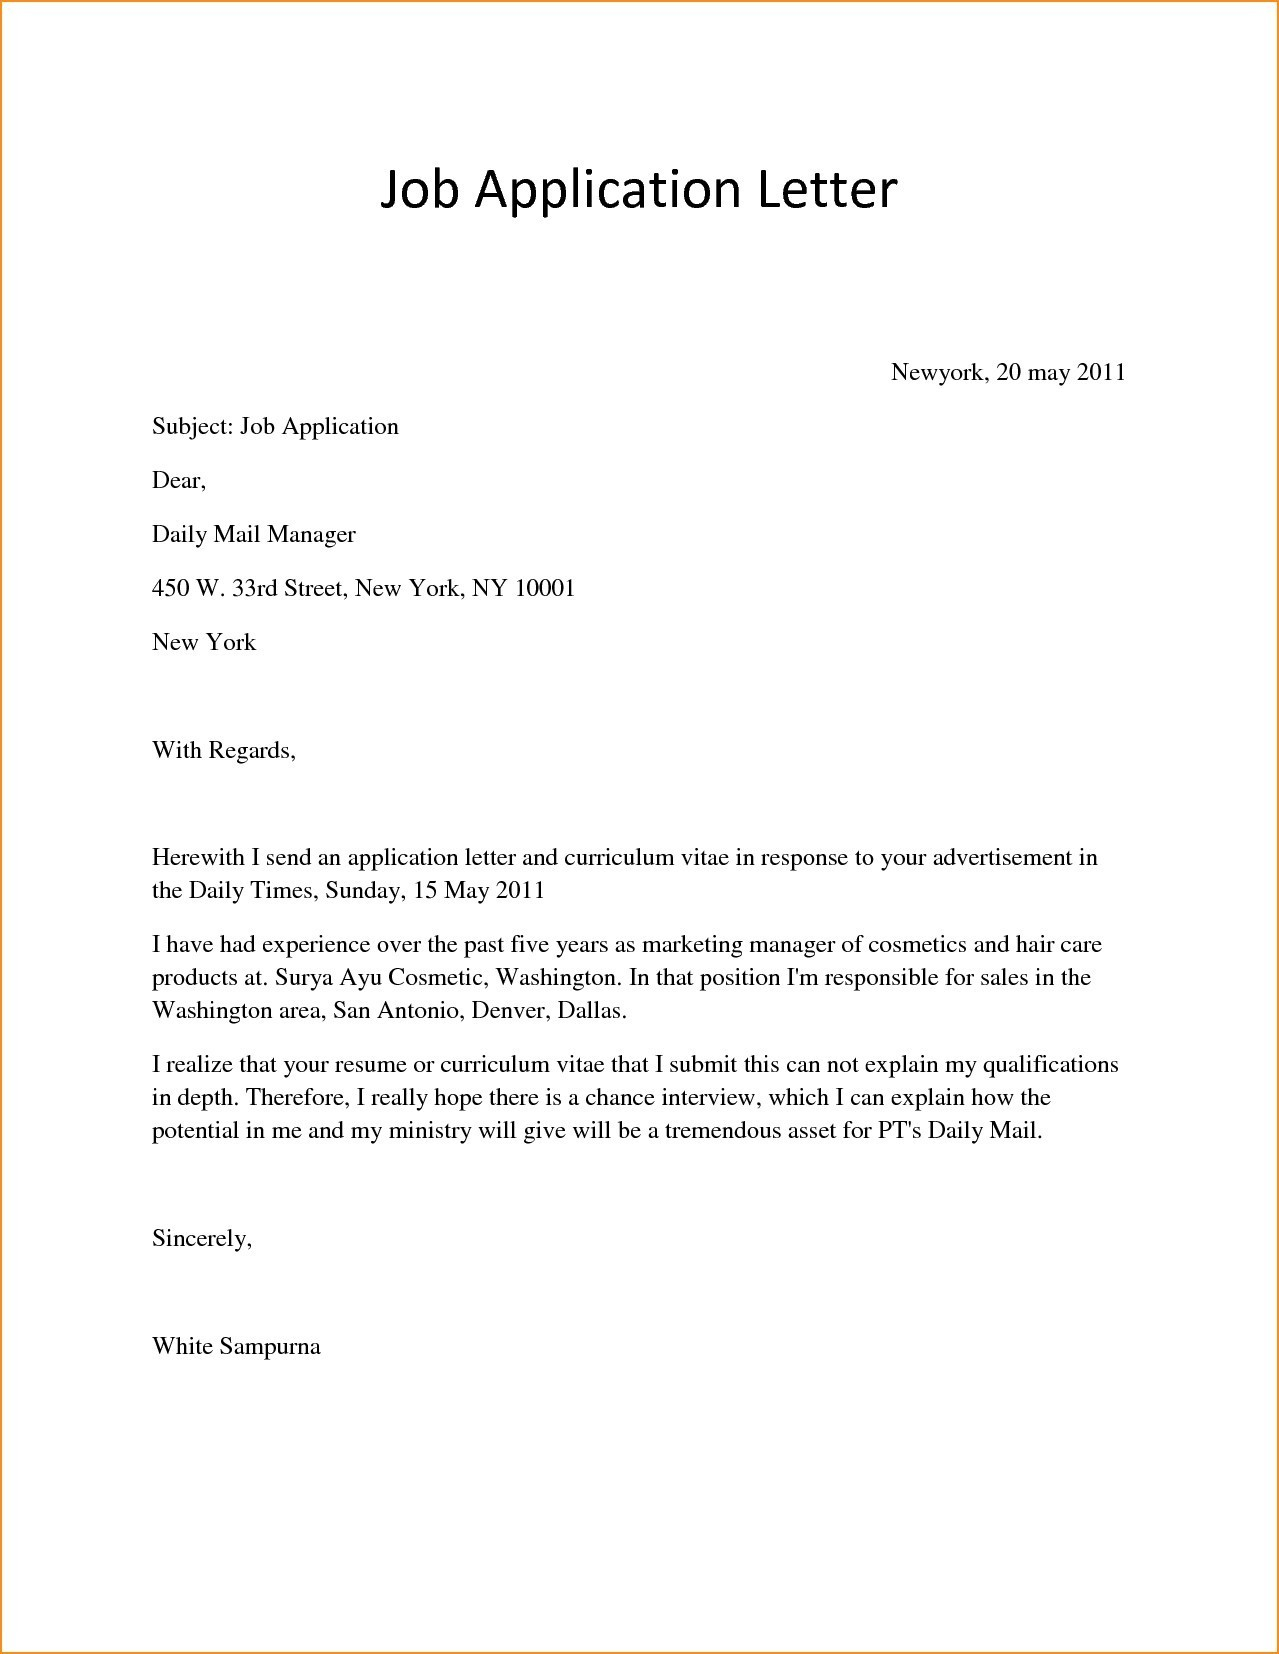 Opt Job Offer Letter Template - Simple Job Cover Letter Examples Inspirationa Letter Examples Job